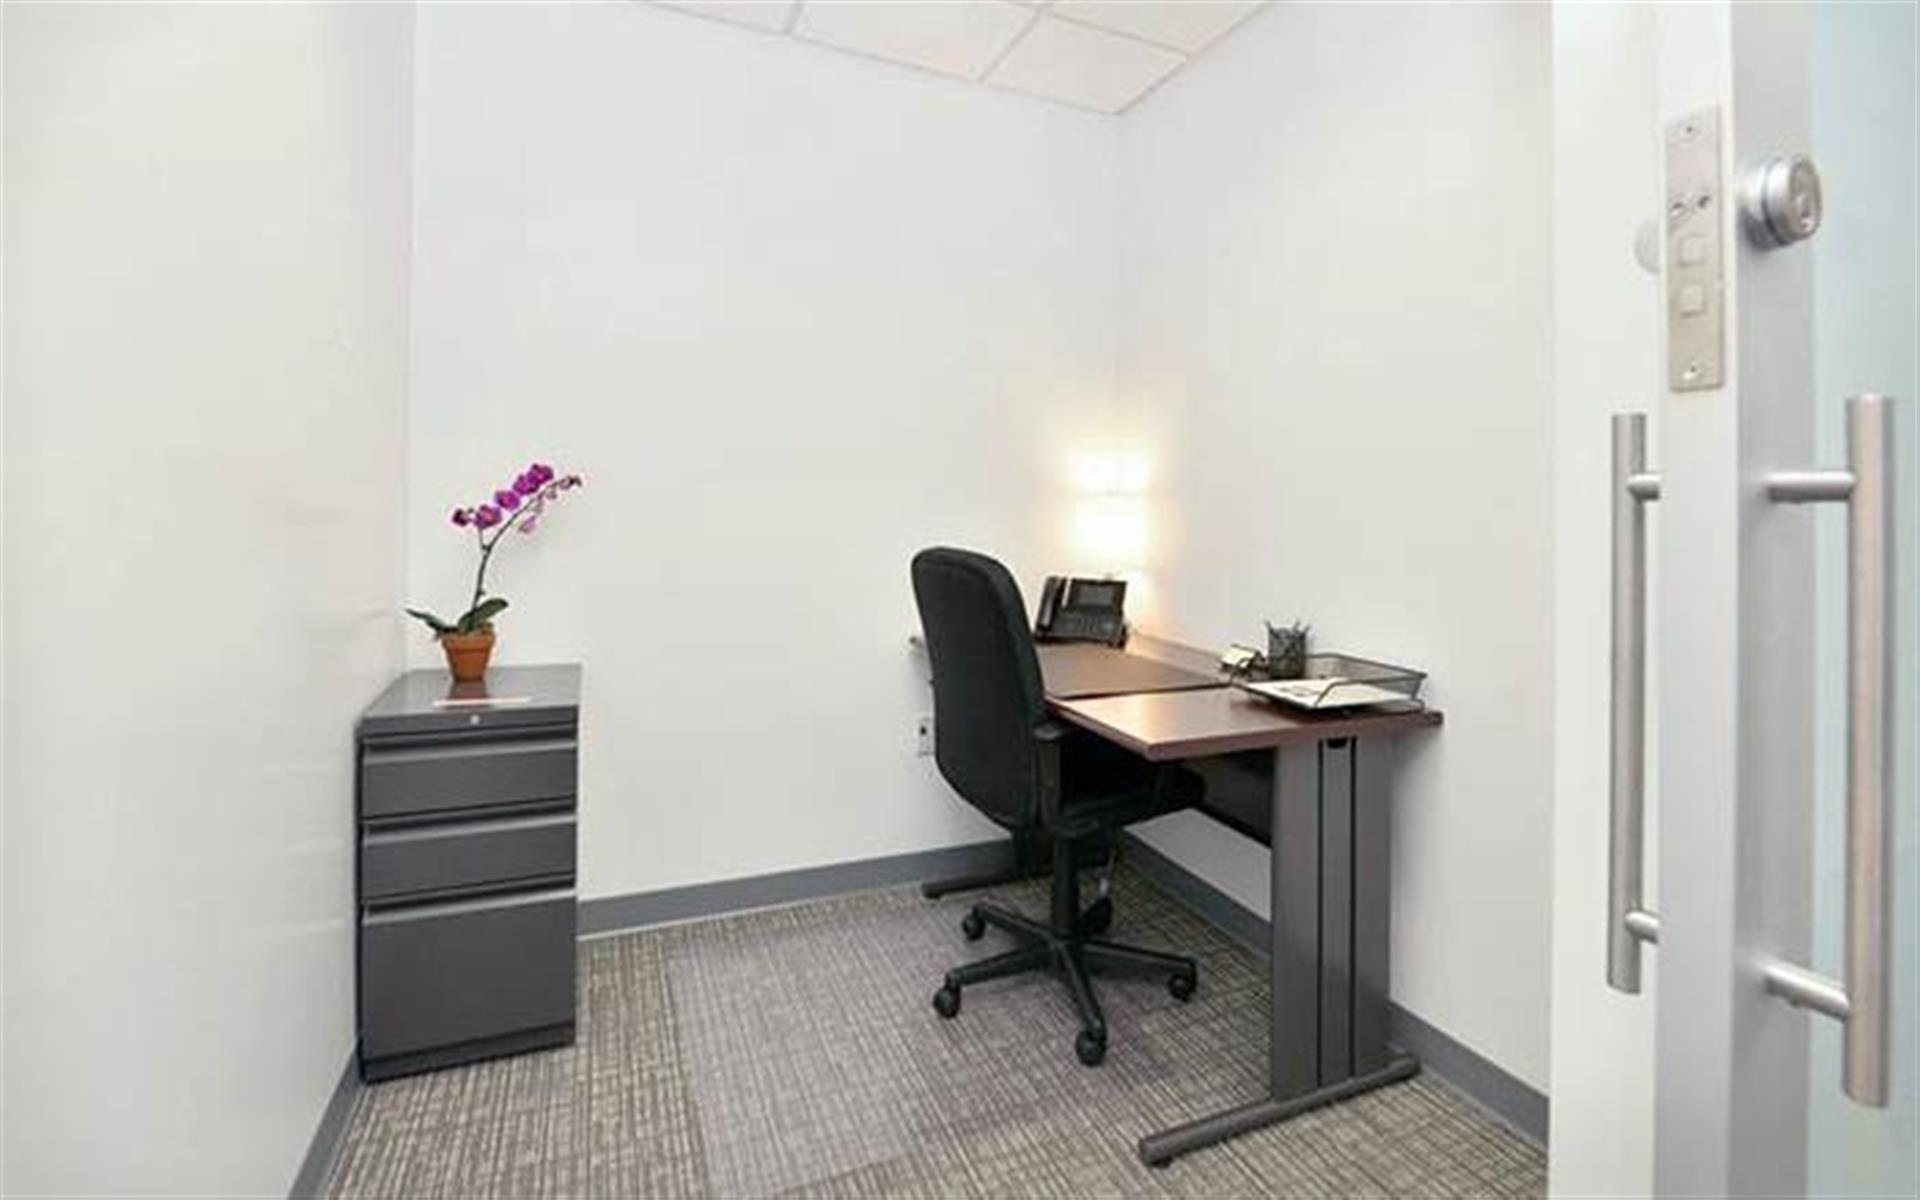 NYC Office Suites 733 (3rd Ave. & 45th) - Sliding Glass Office 1572 (2 Desk)